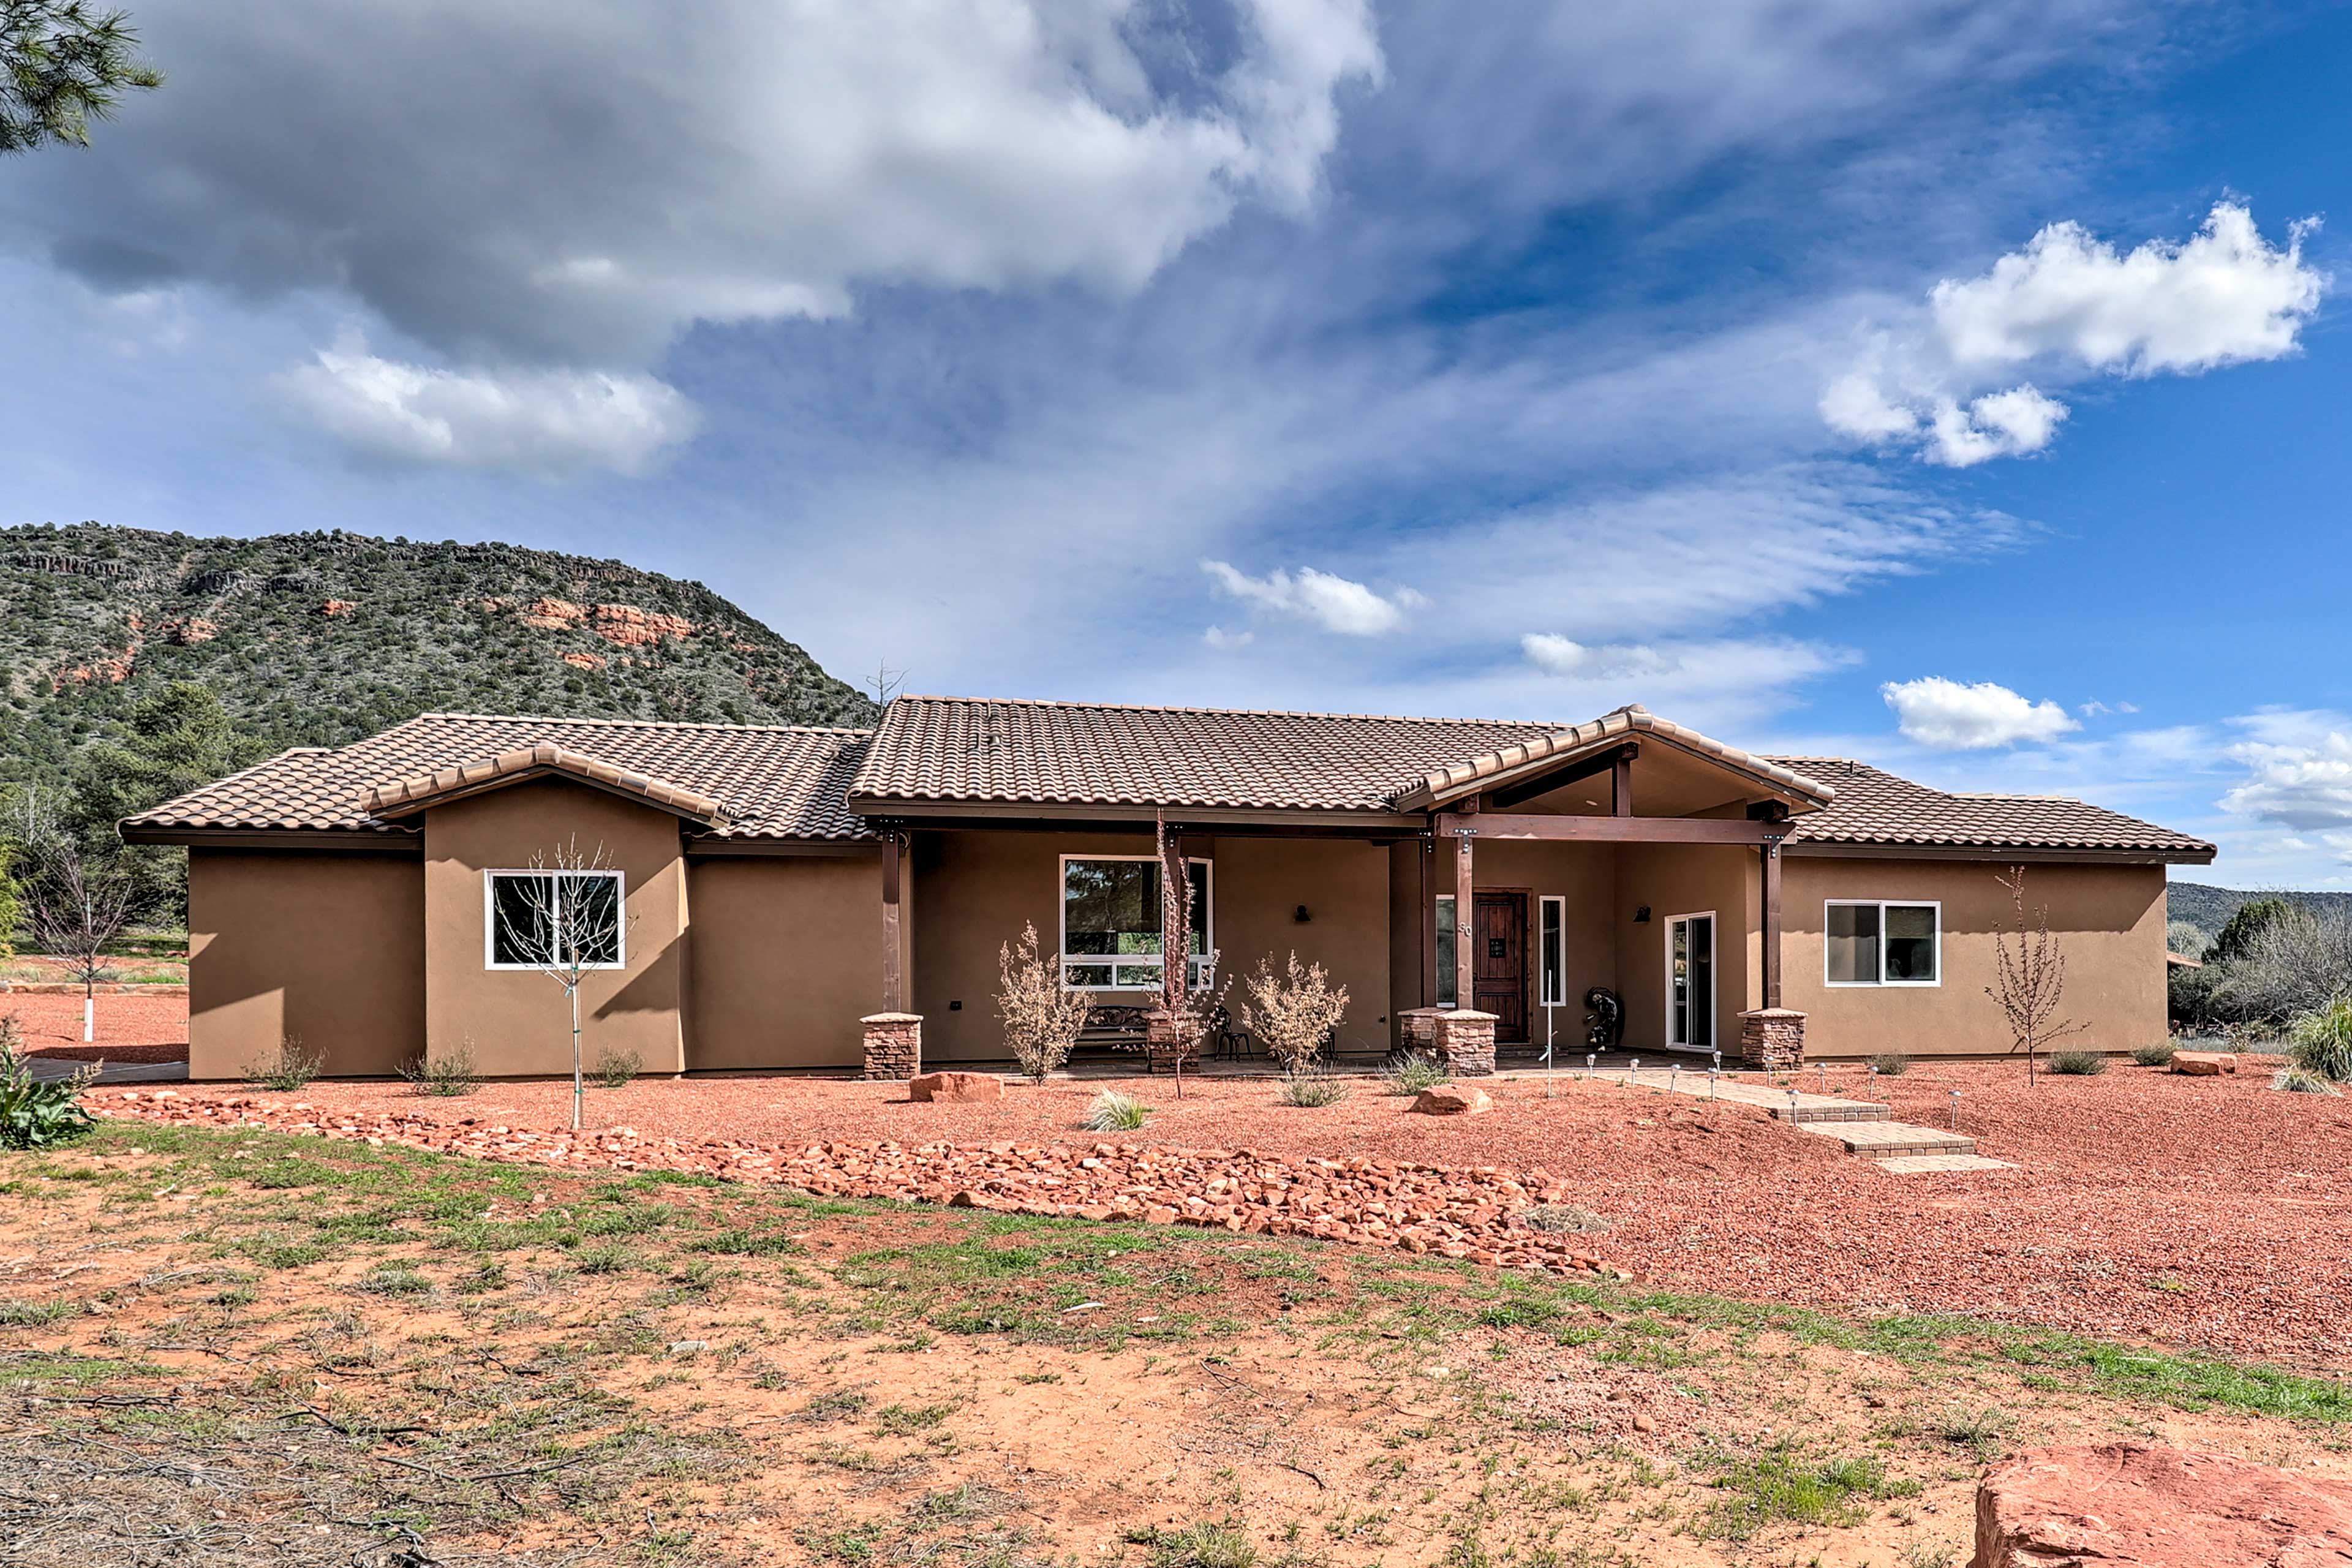 This spacious home offers great views of the mountains.